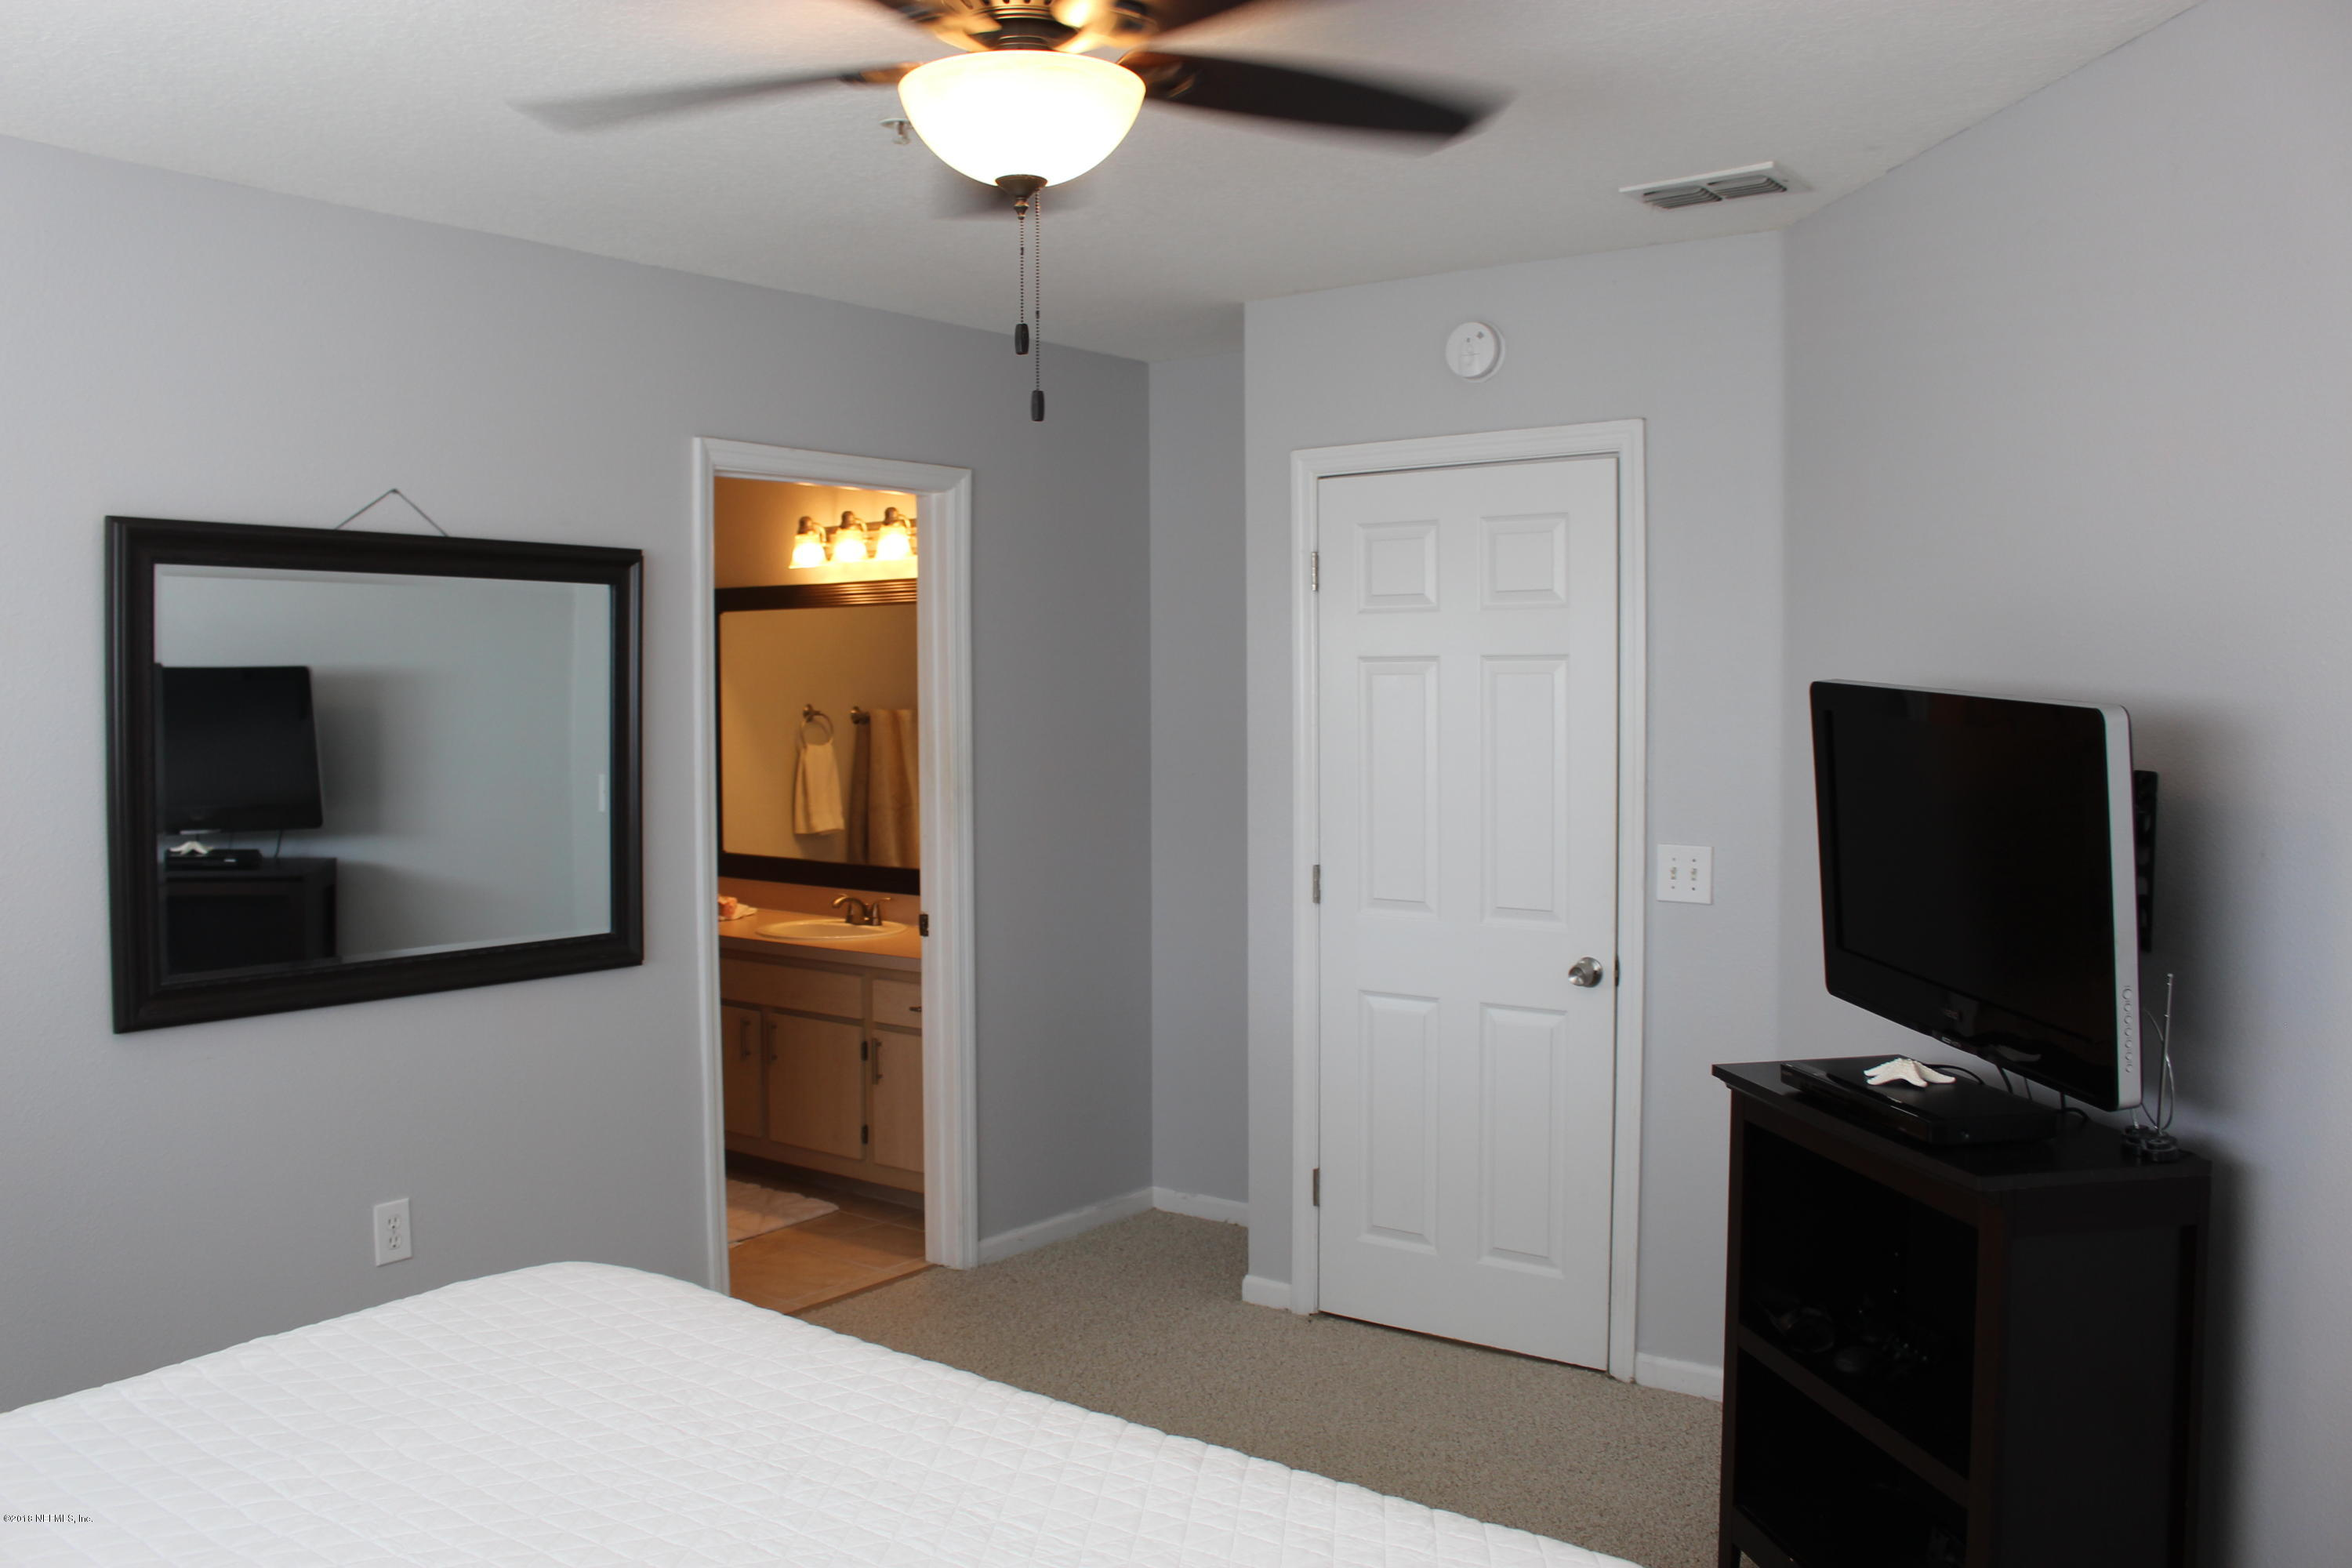 1655 THE GREENS, JACKSONVILLE BEACH, FLORIDA 32250, 2 Bedrooms Bedrooms, ,2 BathroomsBathrooms,Residential - condos/townhomes,For sale,THE GREENS,961931